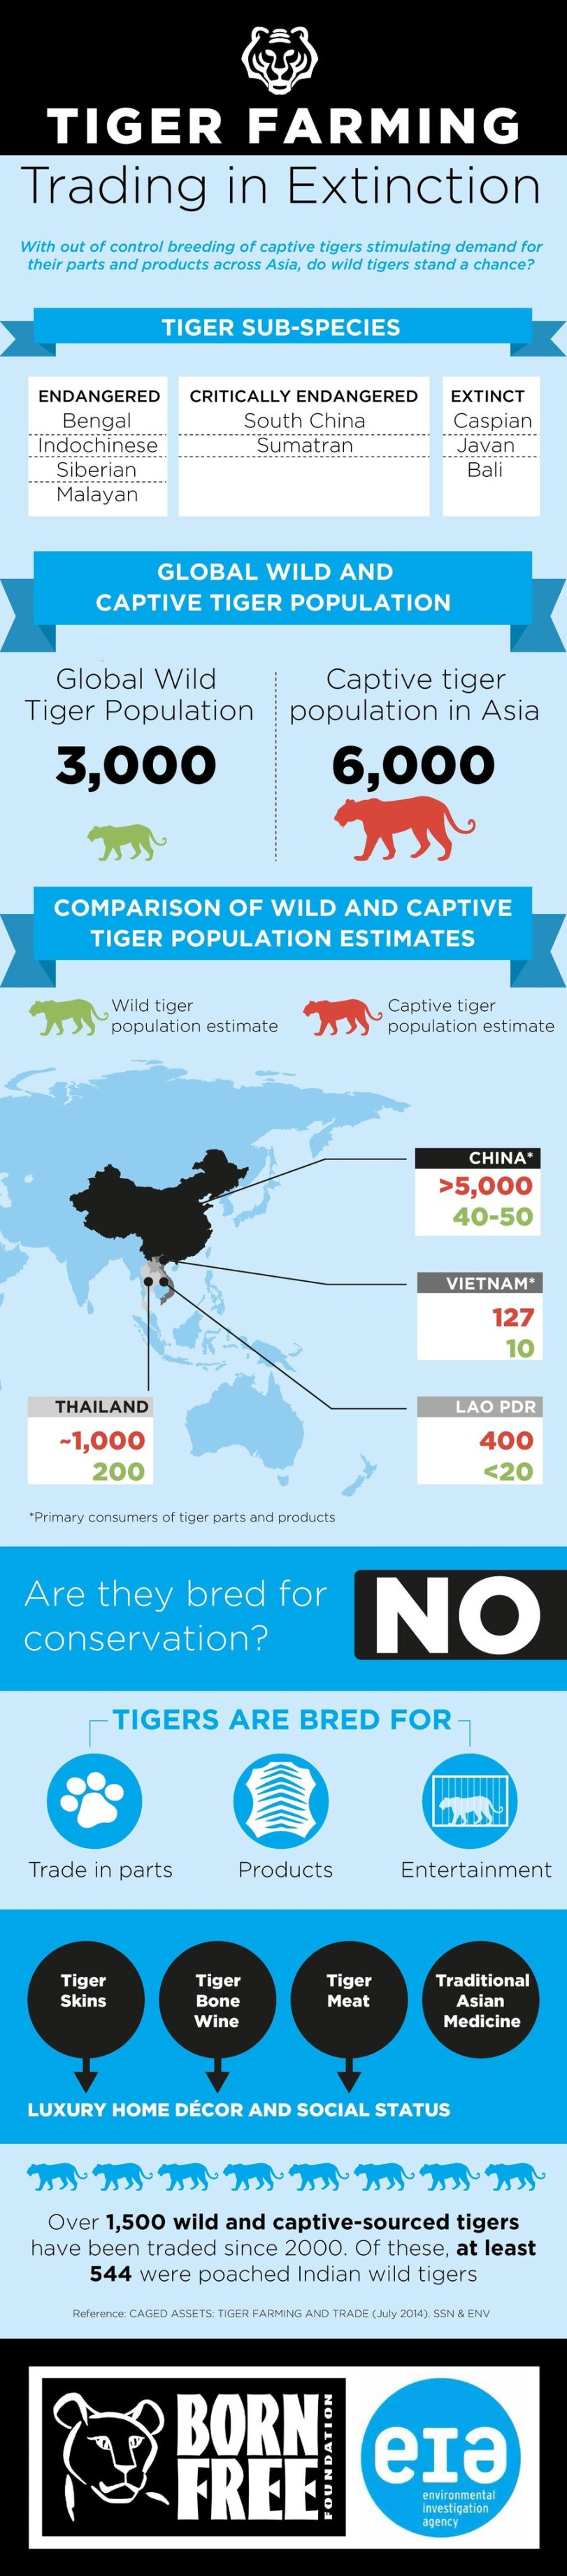 Tiger Farming: Trading in Extinction